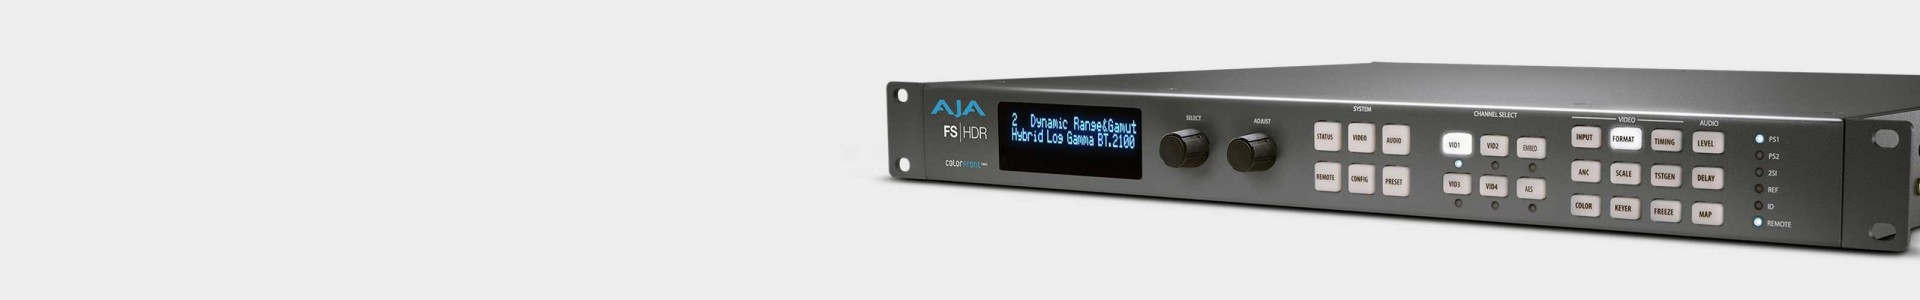 Broadcast Video Synchronizers at the best price - Avacab